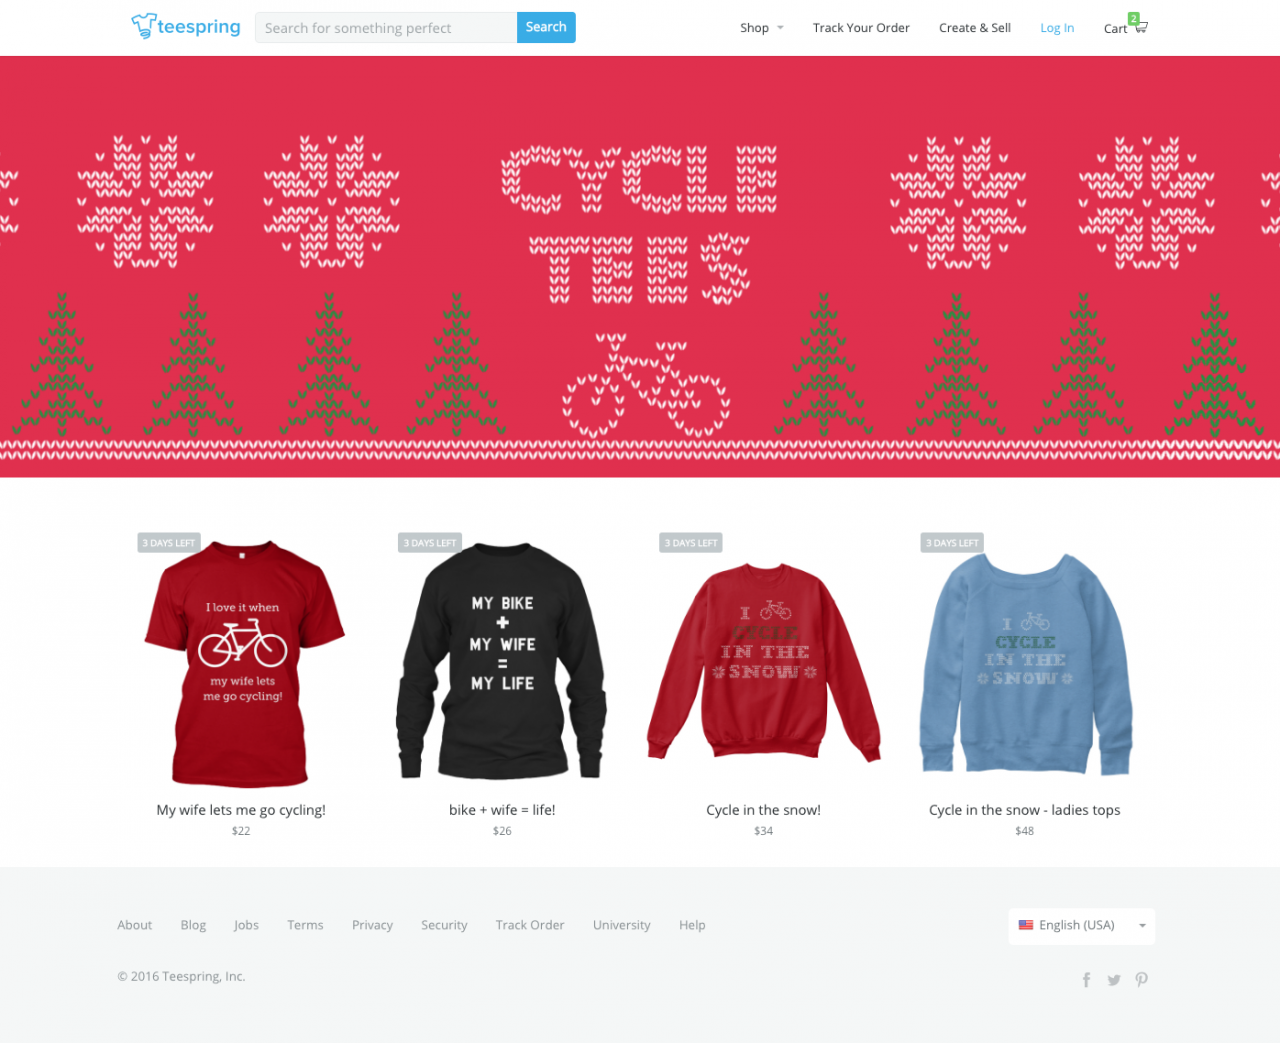 screencapture-teespring-stores-cycle-tees-1475834922362.png